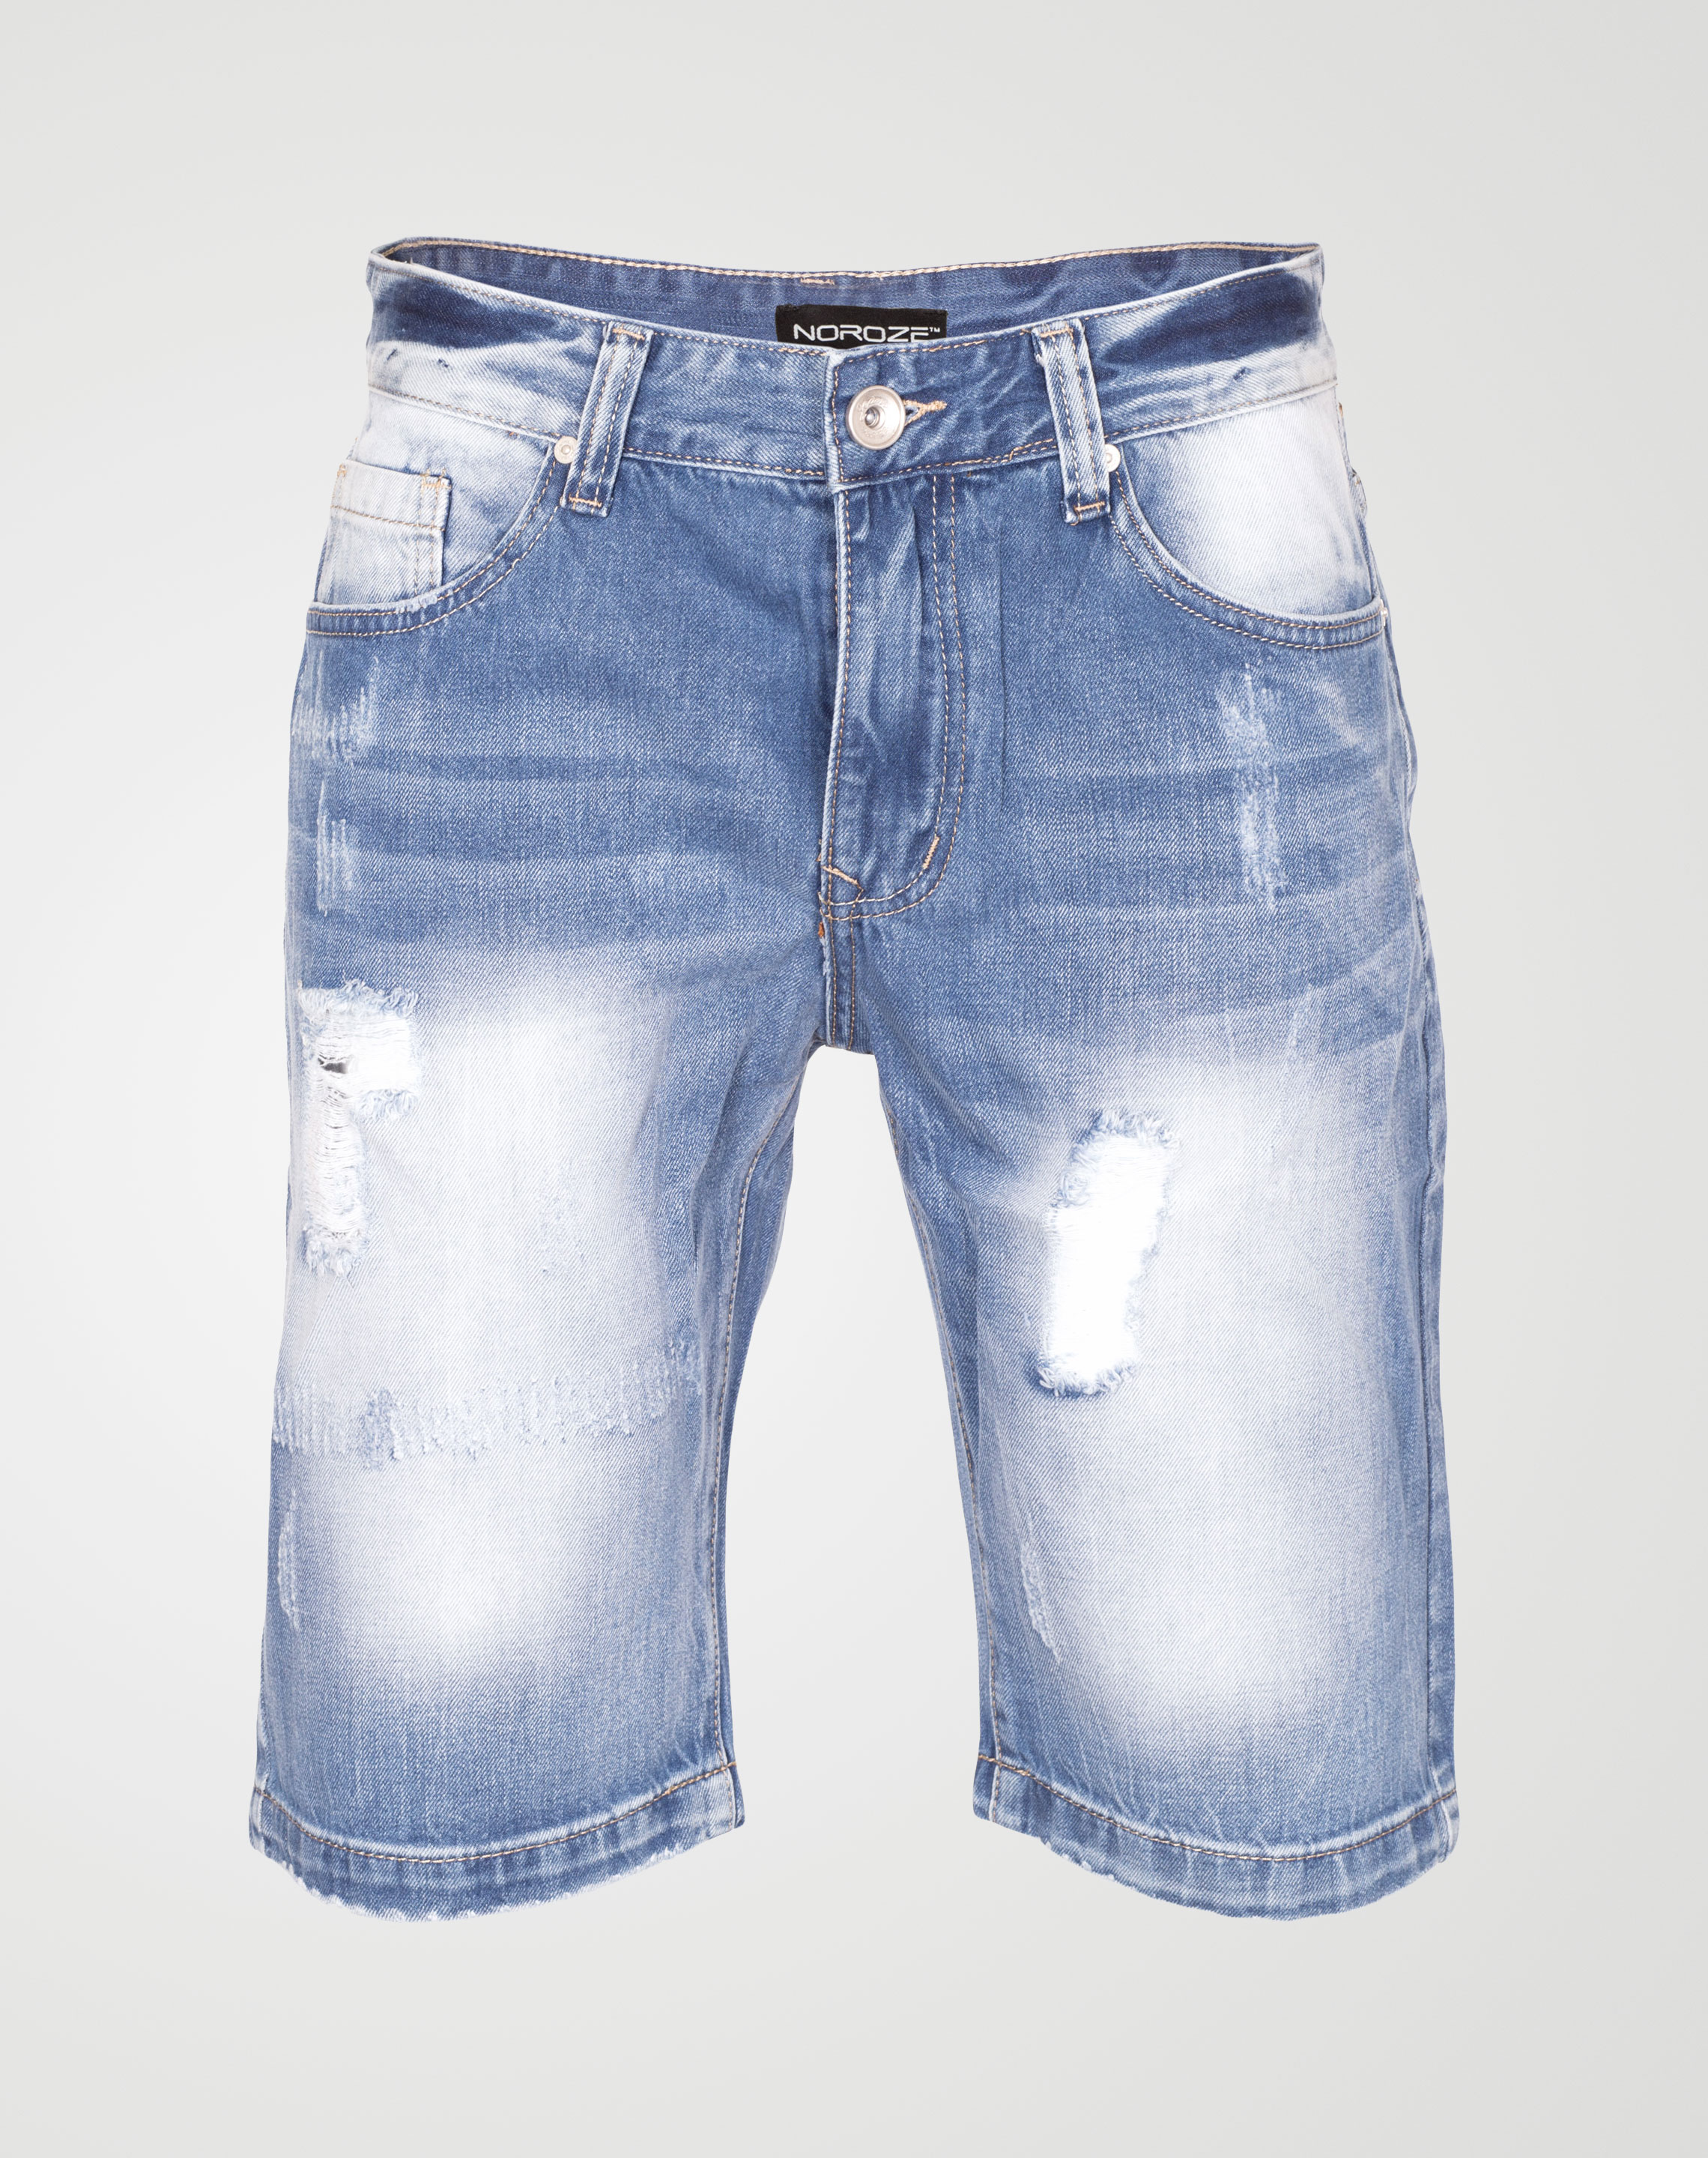 Image 1 of Mens Ripped Denim Shorts WN2441 color Blue and sizes 29, 30, 31, 32, 33, 34, 36, 38 from Noroze